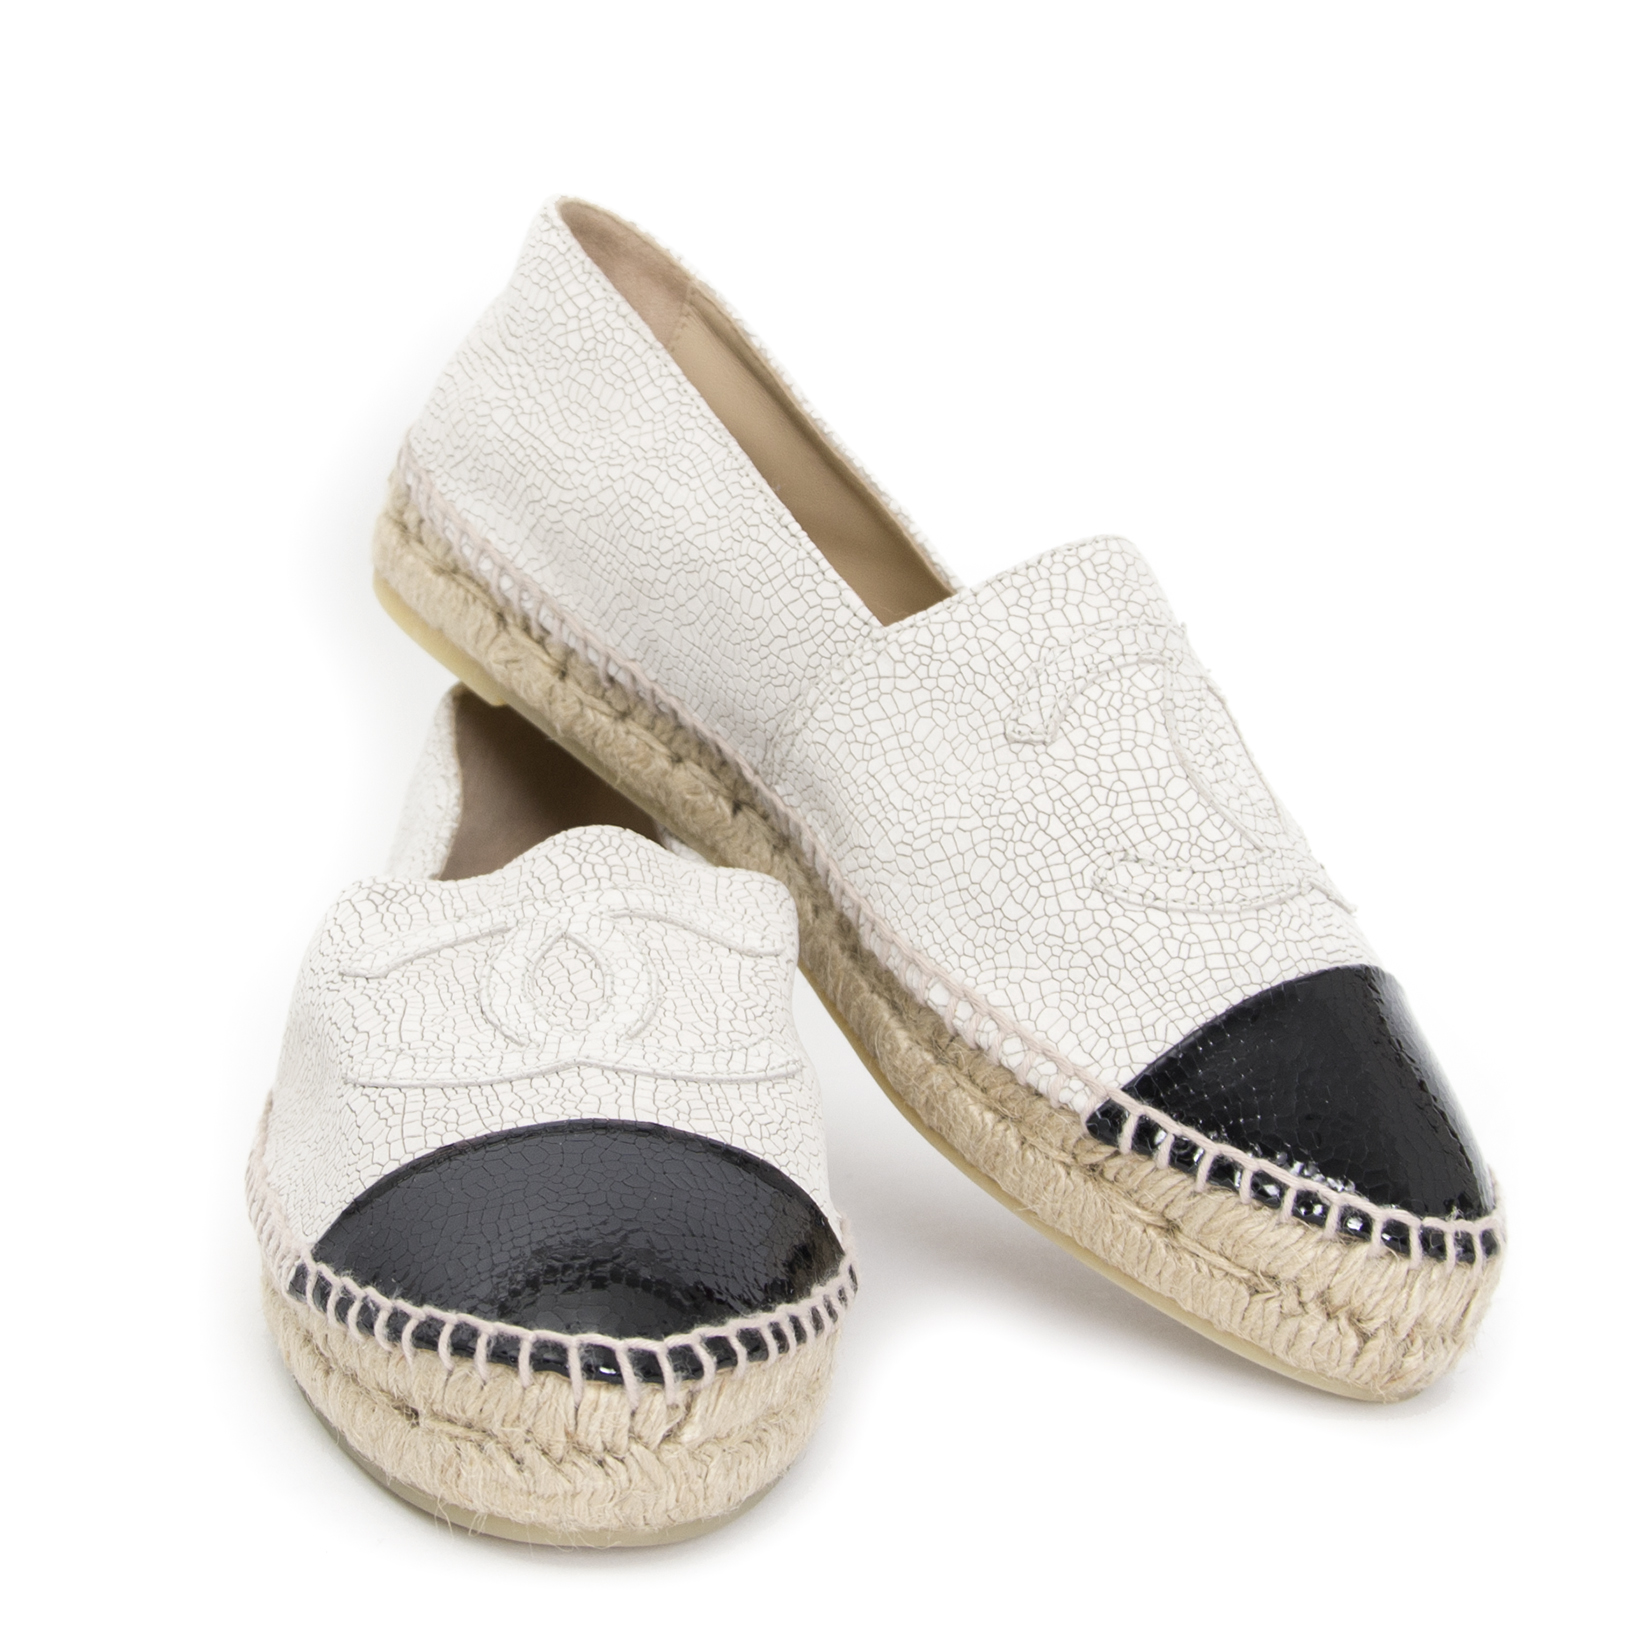 looking for a secondhand Chanel Crackled Leather Beige Black Espadrilles - size 41